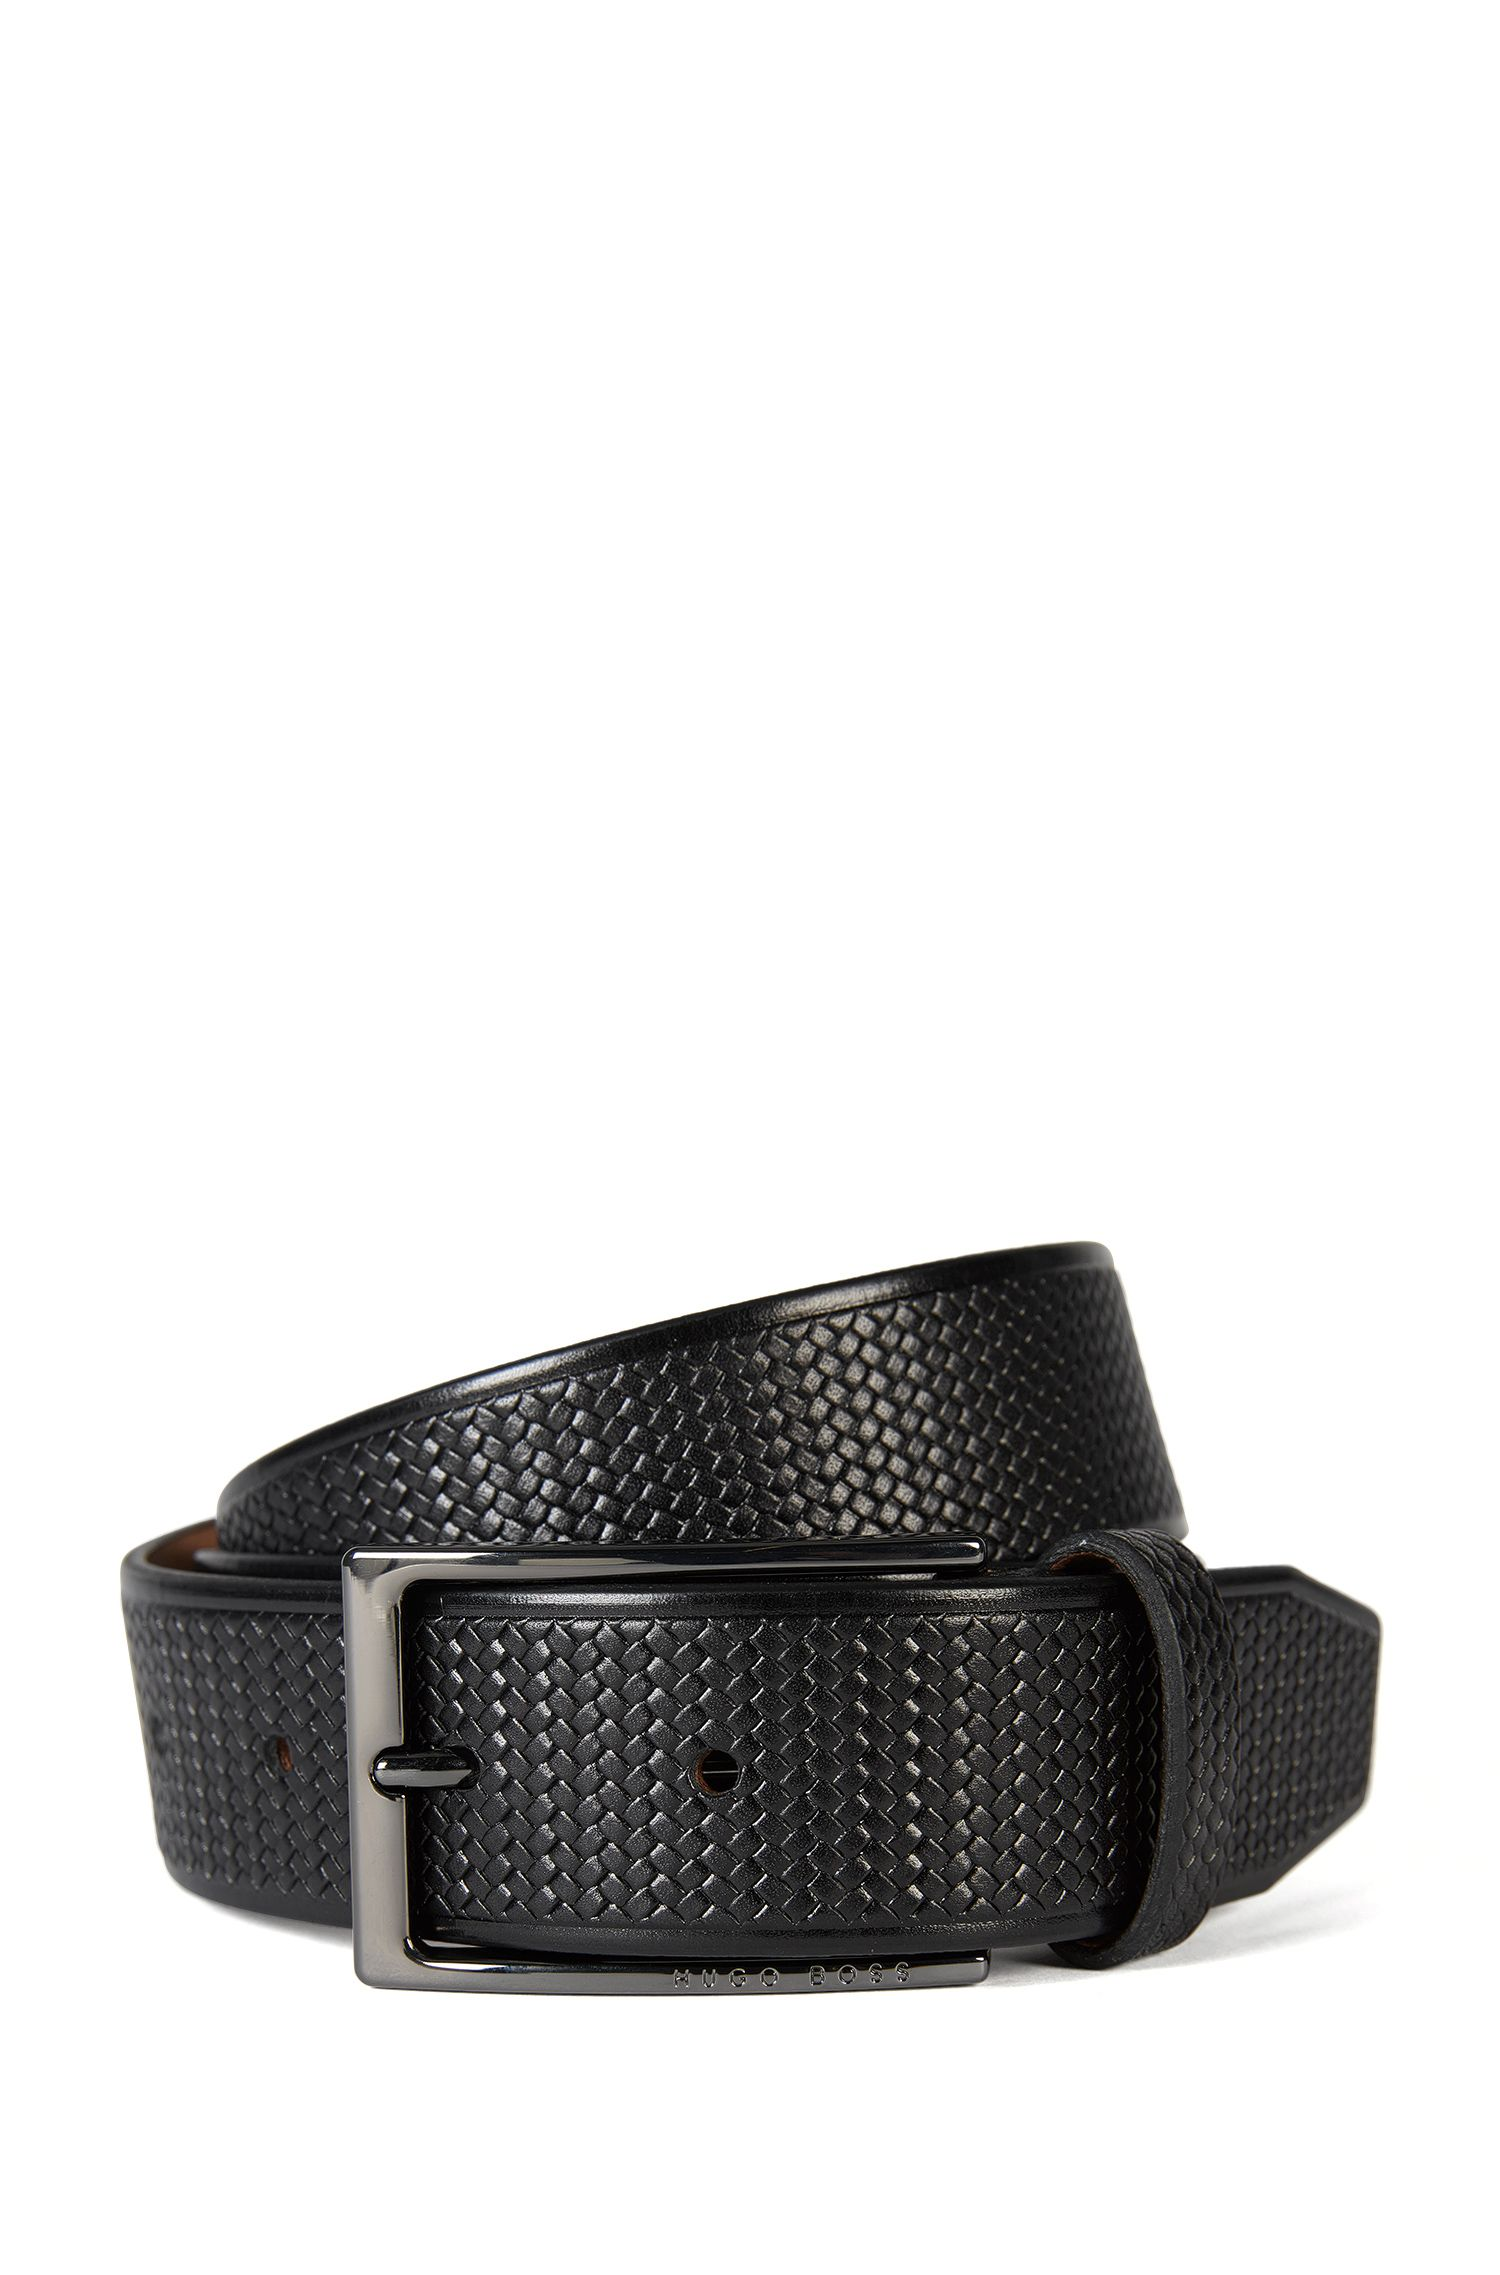 Italian Leather Braided Belt | Claux Sz35 Item